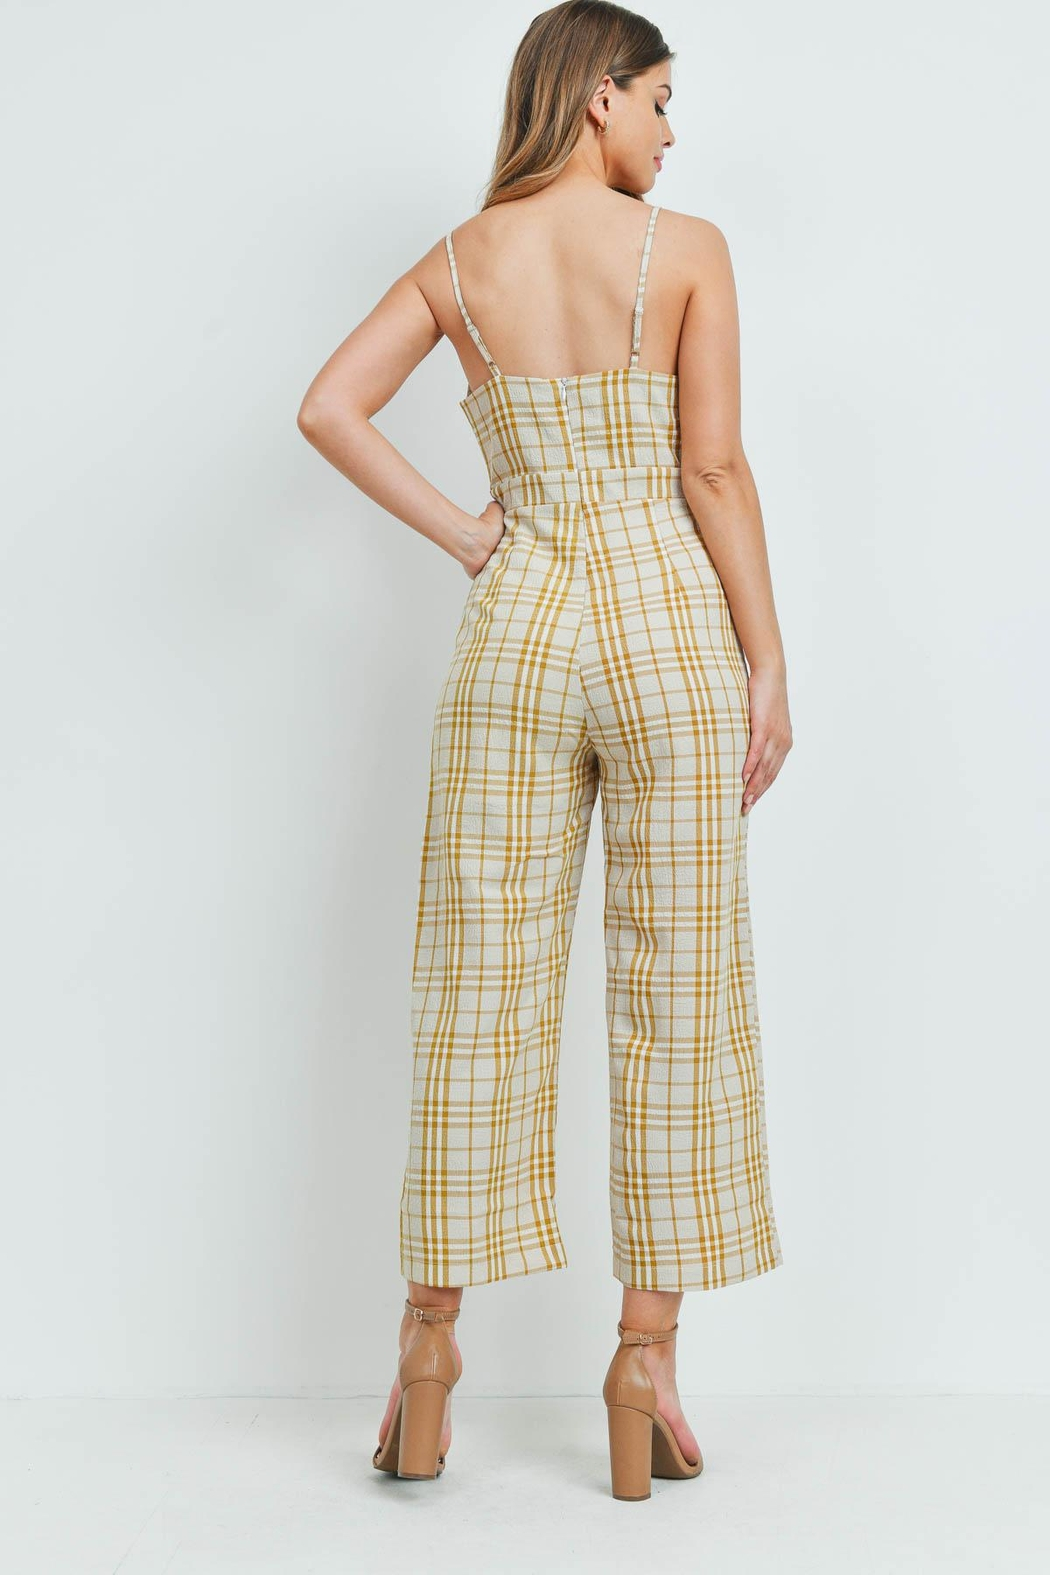 Riah Fashion Checkered-Jumpsuit - Front Full Image